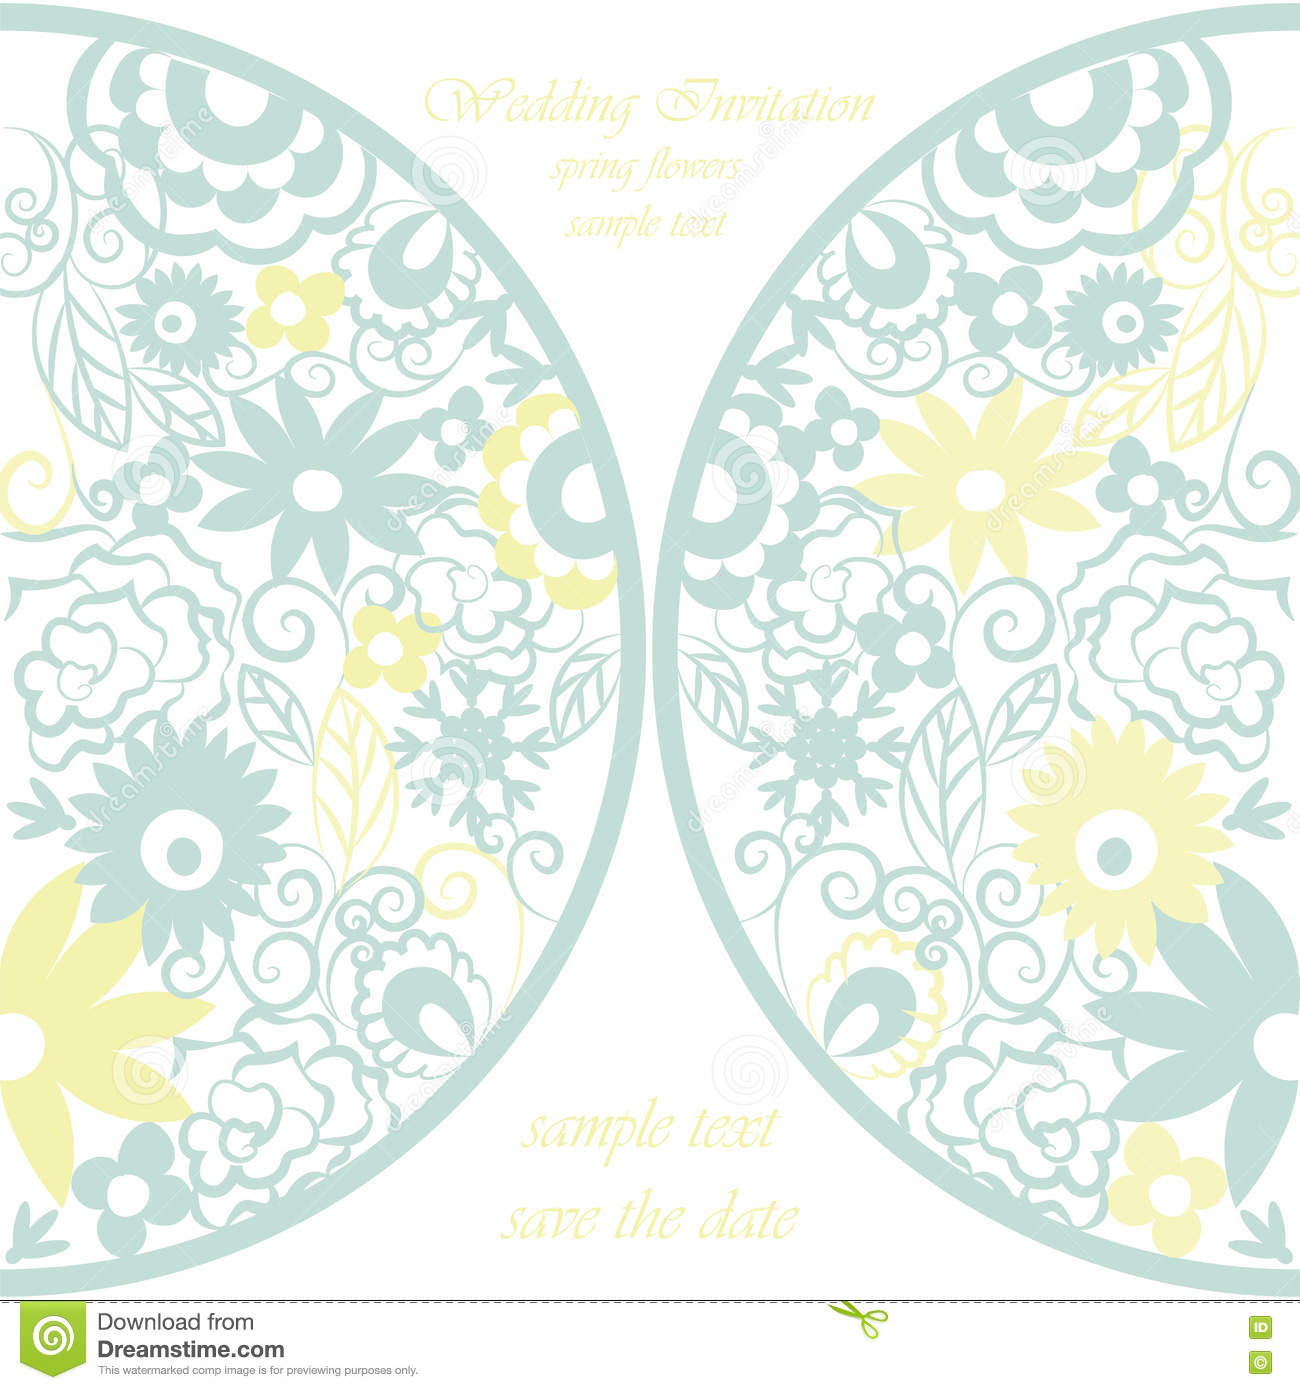 Crochet Wedding Invitations: Vector Round Invitation Card Ornamental Lace Crochet With